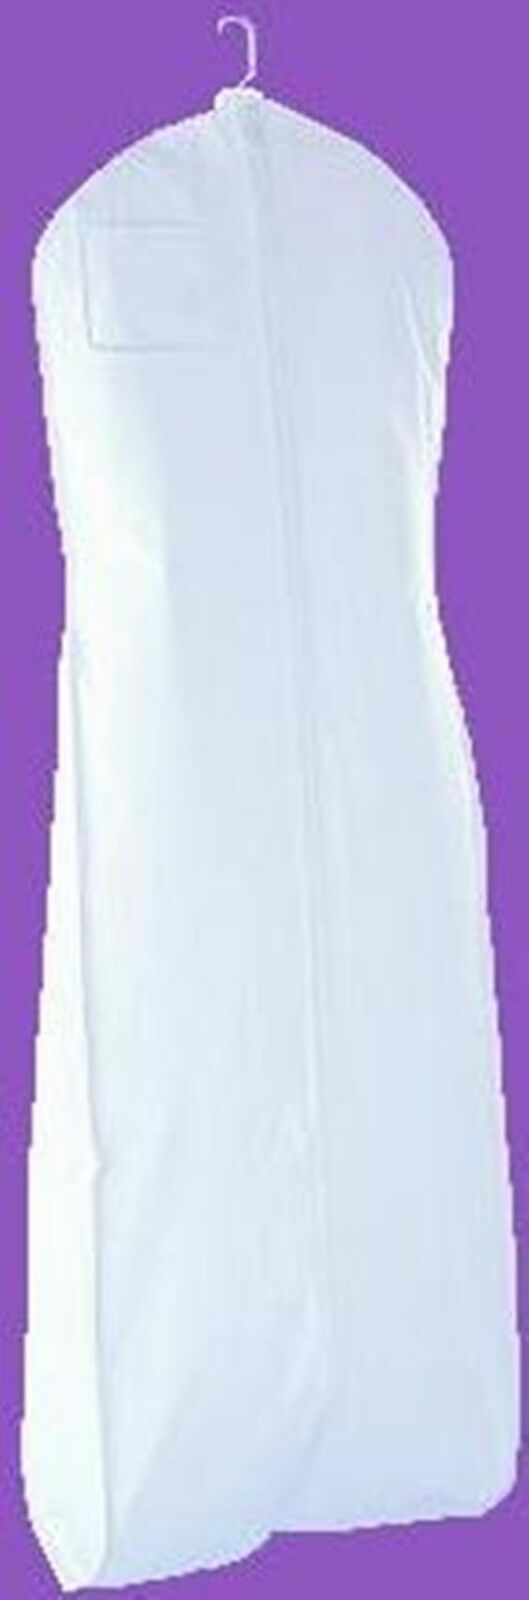 White Vinyl Church Choir Clergy Robe Gown Dress Garment Bag | eBay